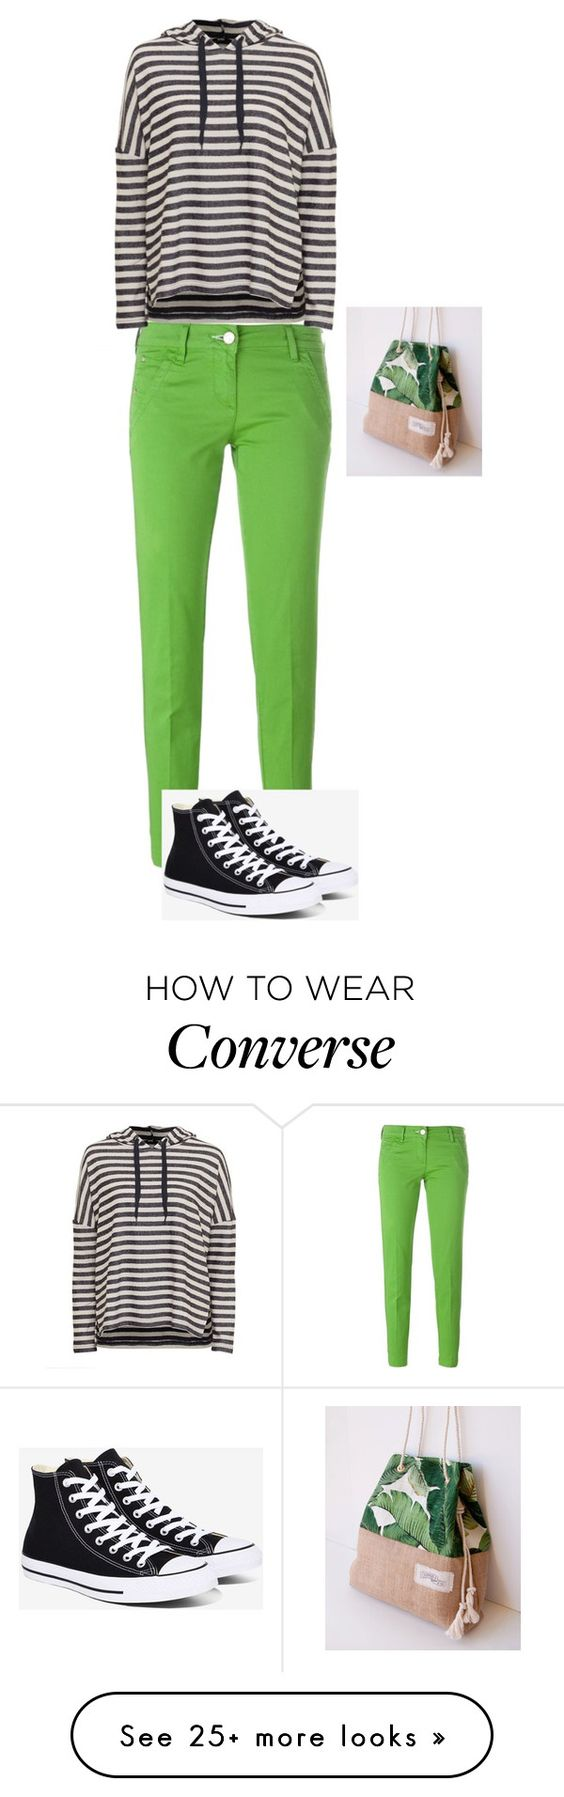 """""""women"""" by merisa-imsirovic on Polyvore featuring Jacob Cohёn, Converse and Green Banana"""